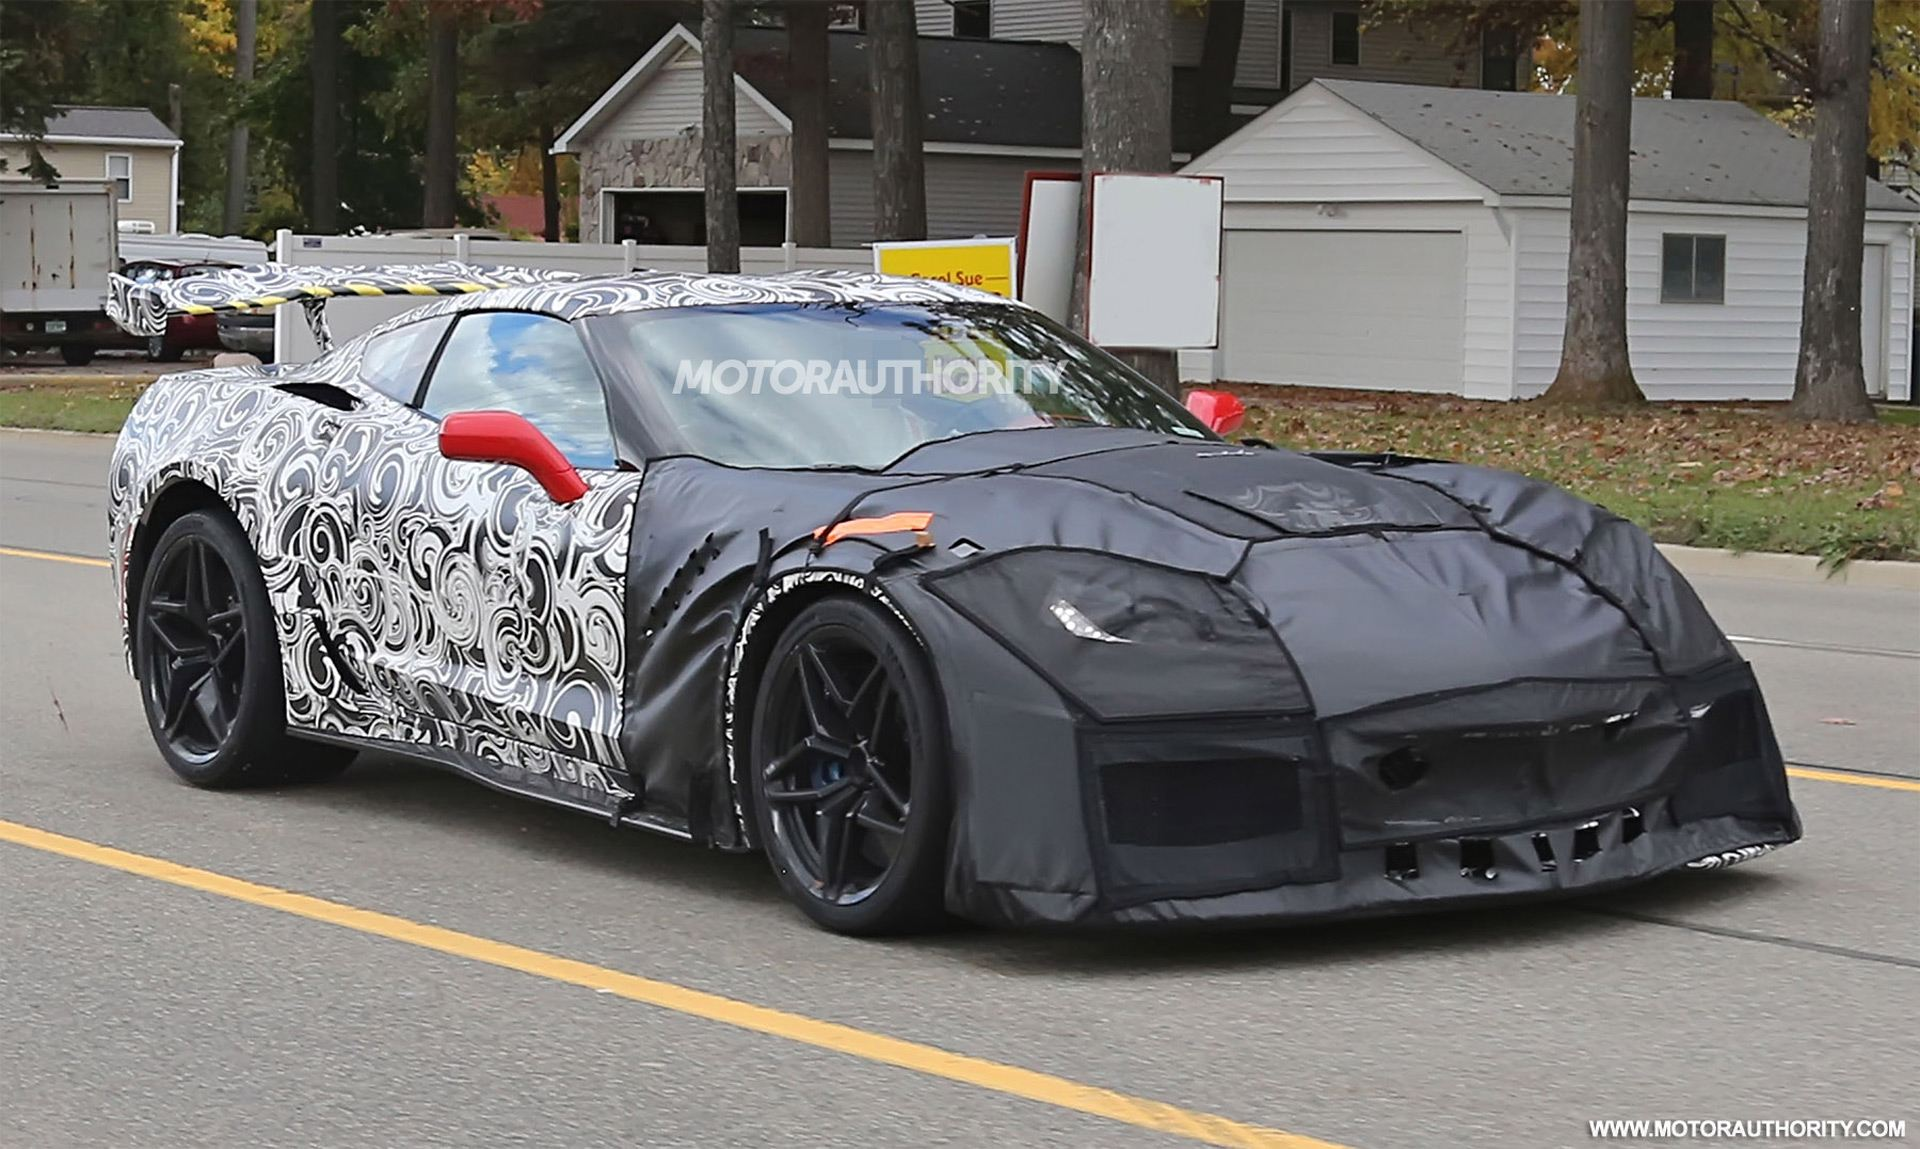 2018 Chevrolet Corvette ZR1 Spy Photo Via MotorAuthority.com